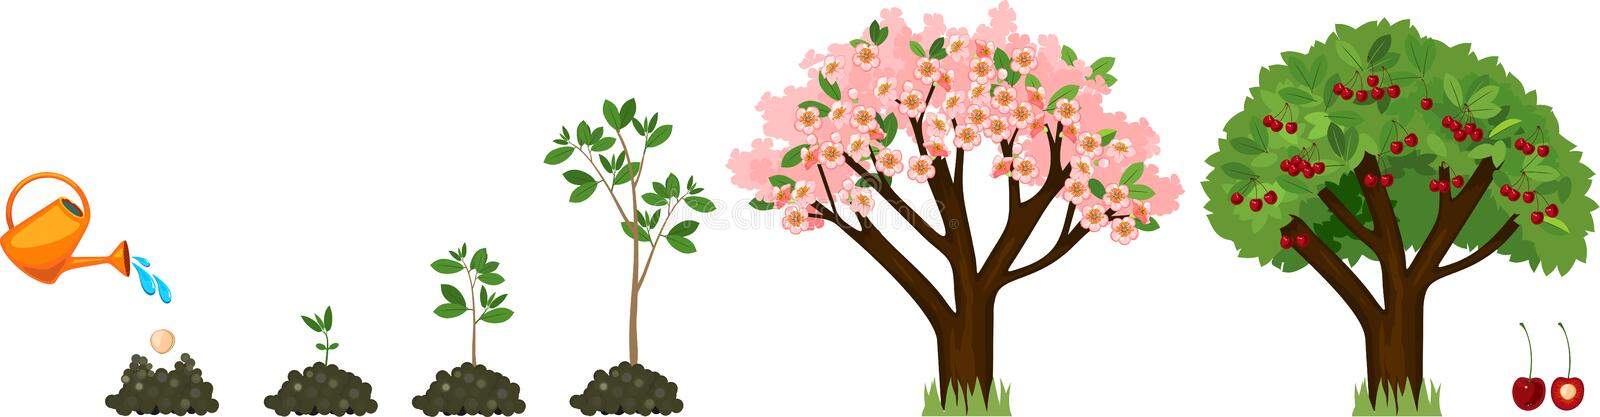 Plant growing from seed to cherry tree. vector illustration